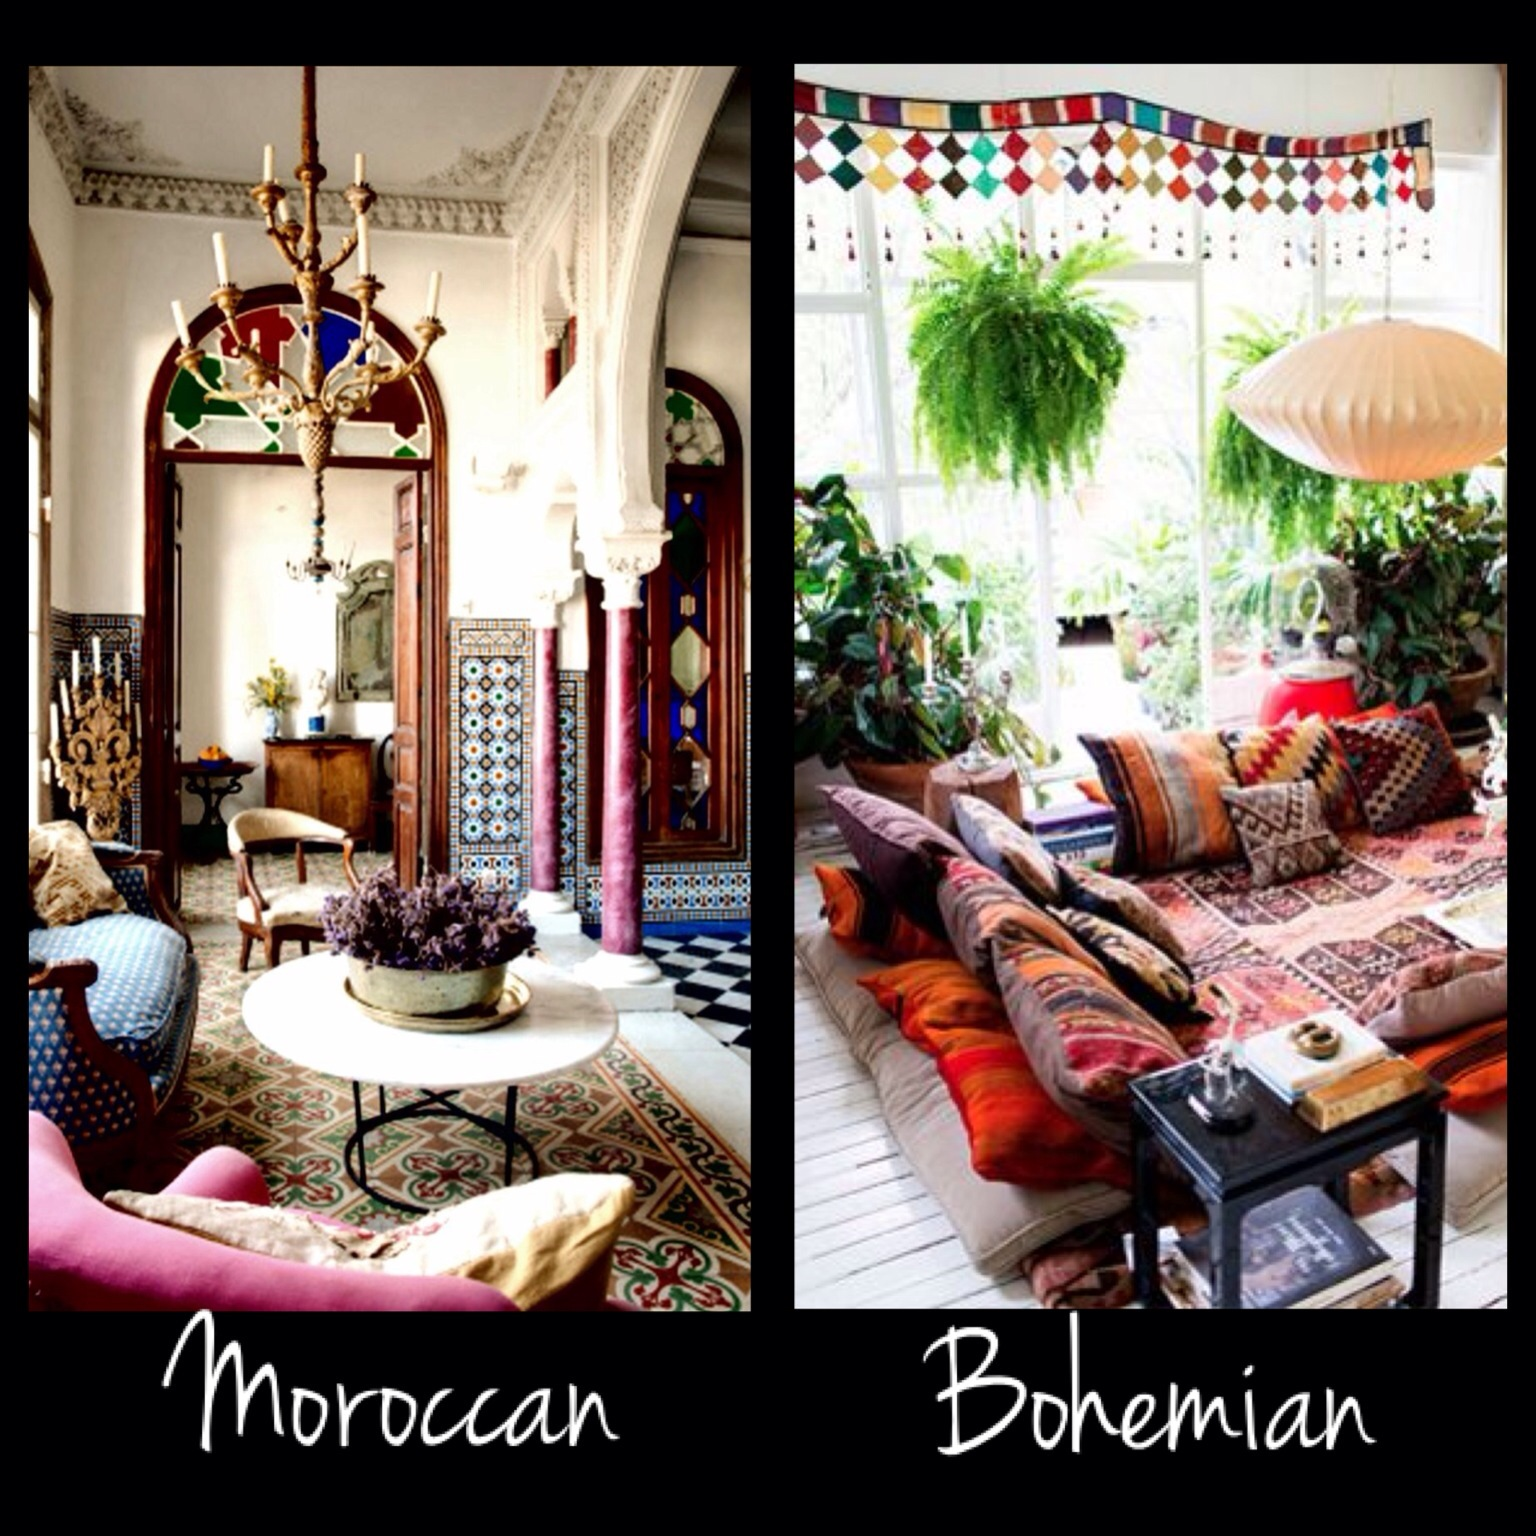 The thin line between Moroccan and Bohemian style   My Interior     Hello guys  it s me again  Okay  so I ve initially planned to post this  after a week or so but due to the series of unfortunate events     nothing  serious